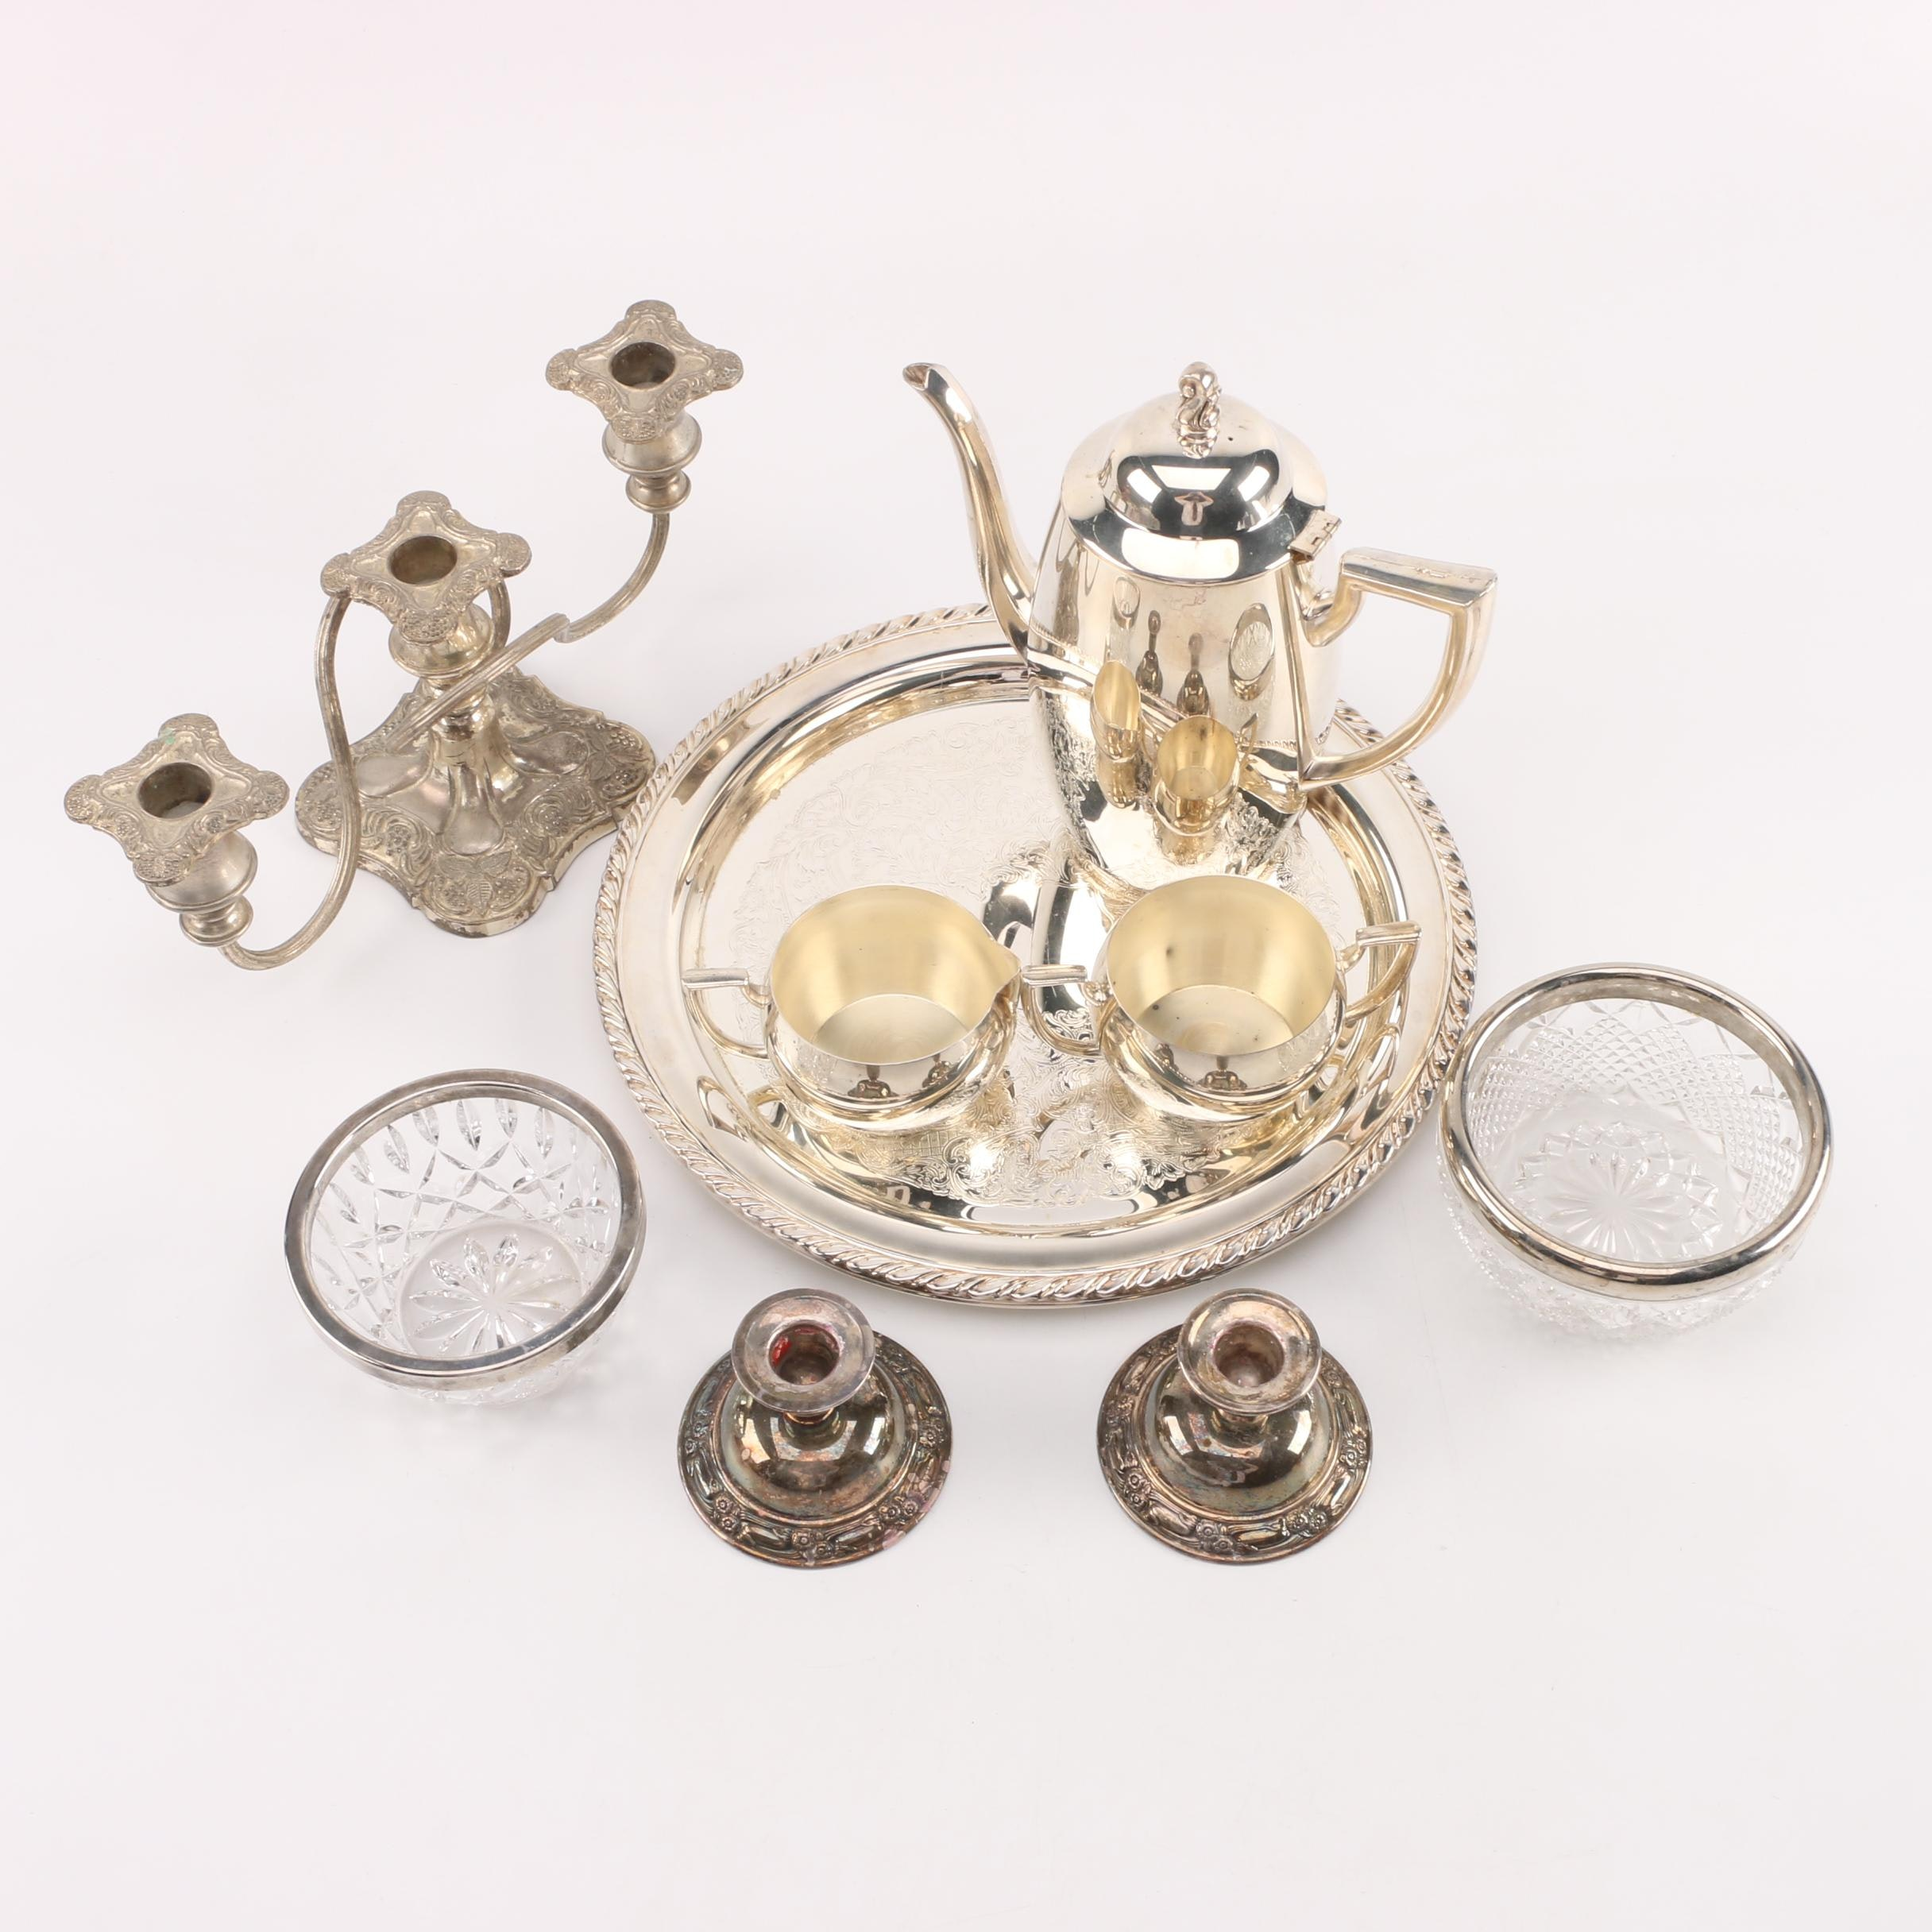 Oneida Silver Plate Coffee Service with Silver Plate Candlesticks and Tableware